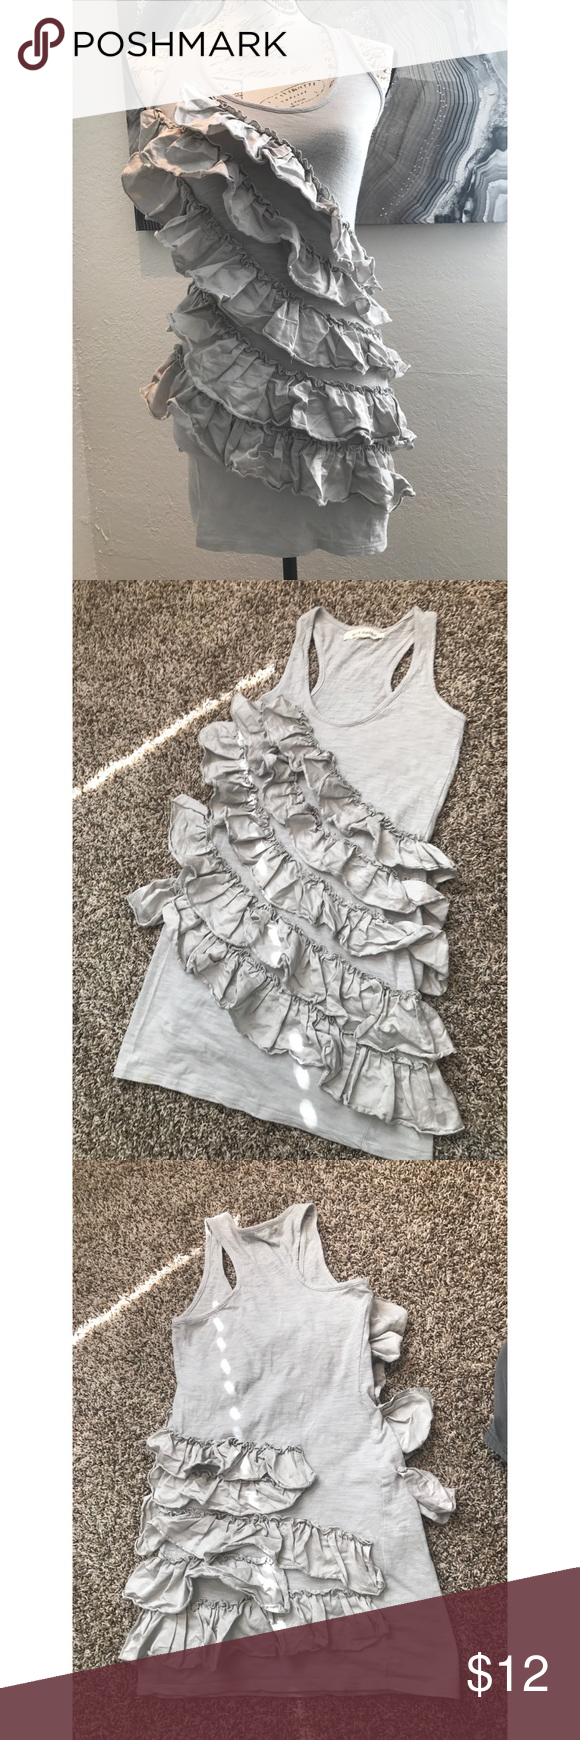 Steve Madden Ruffle Tank Dress s Darling cotton dress adorned in Ruffles! Light weight and great for teens or adults to wear as a dress or long tanks with leggings Steve Madden Dresses Mini